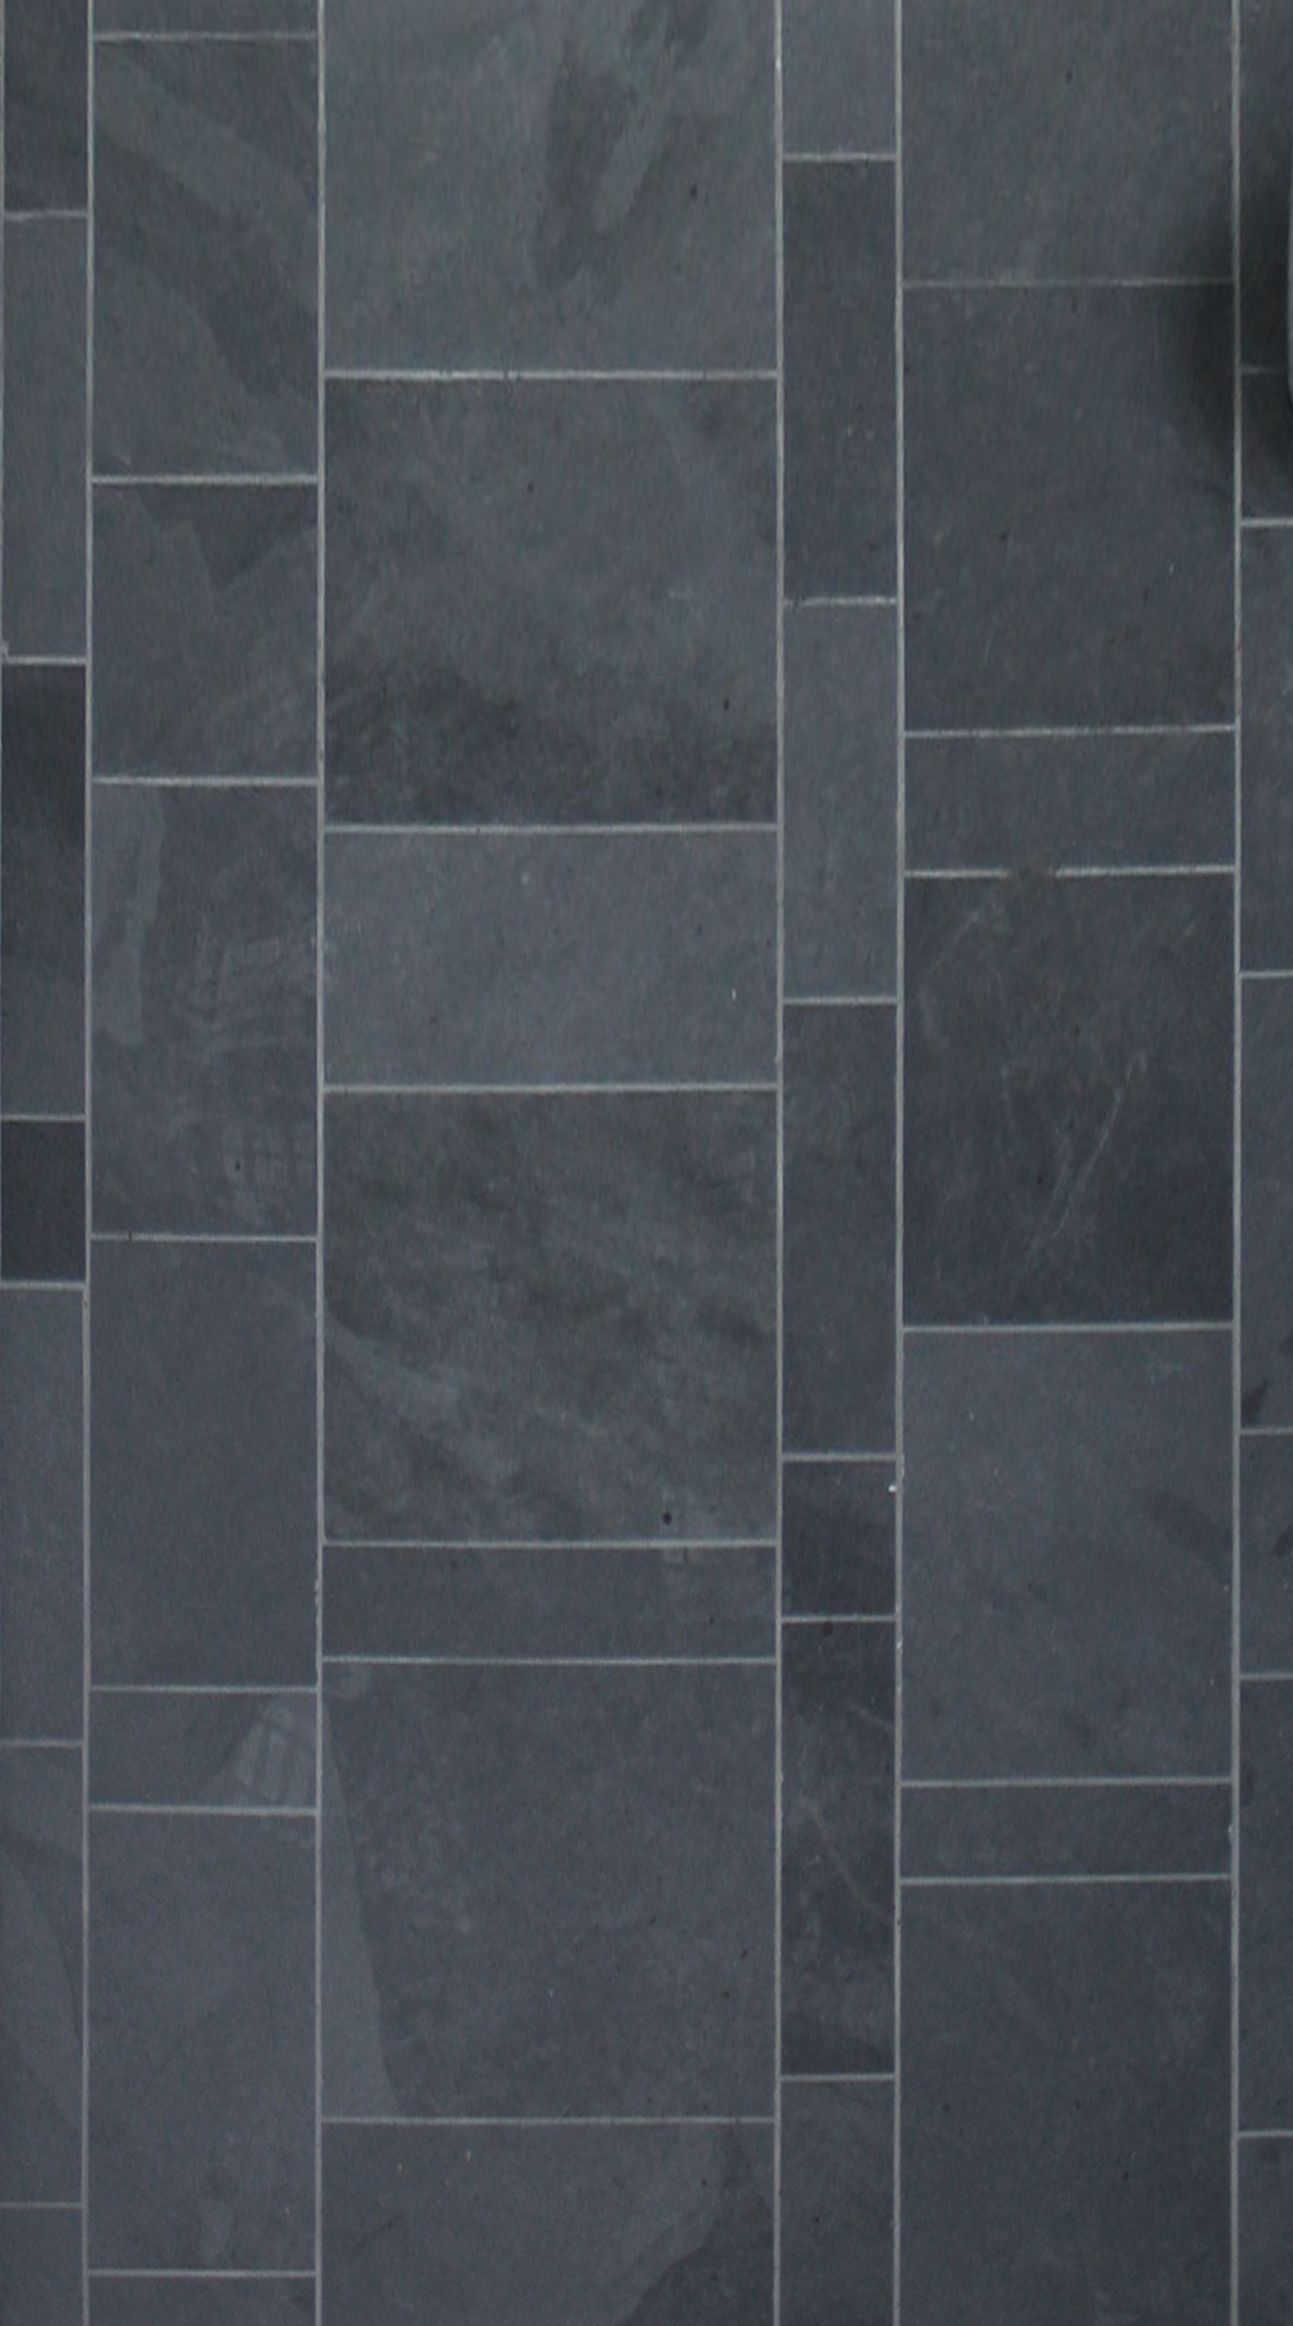 Floor Tile Natural Stone Black Slate Alchemy Architects Www Weehouse Com Patterned Floor Tiles Tiles Texture Tiles